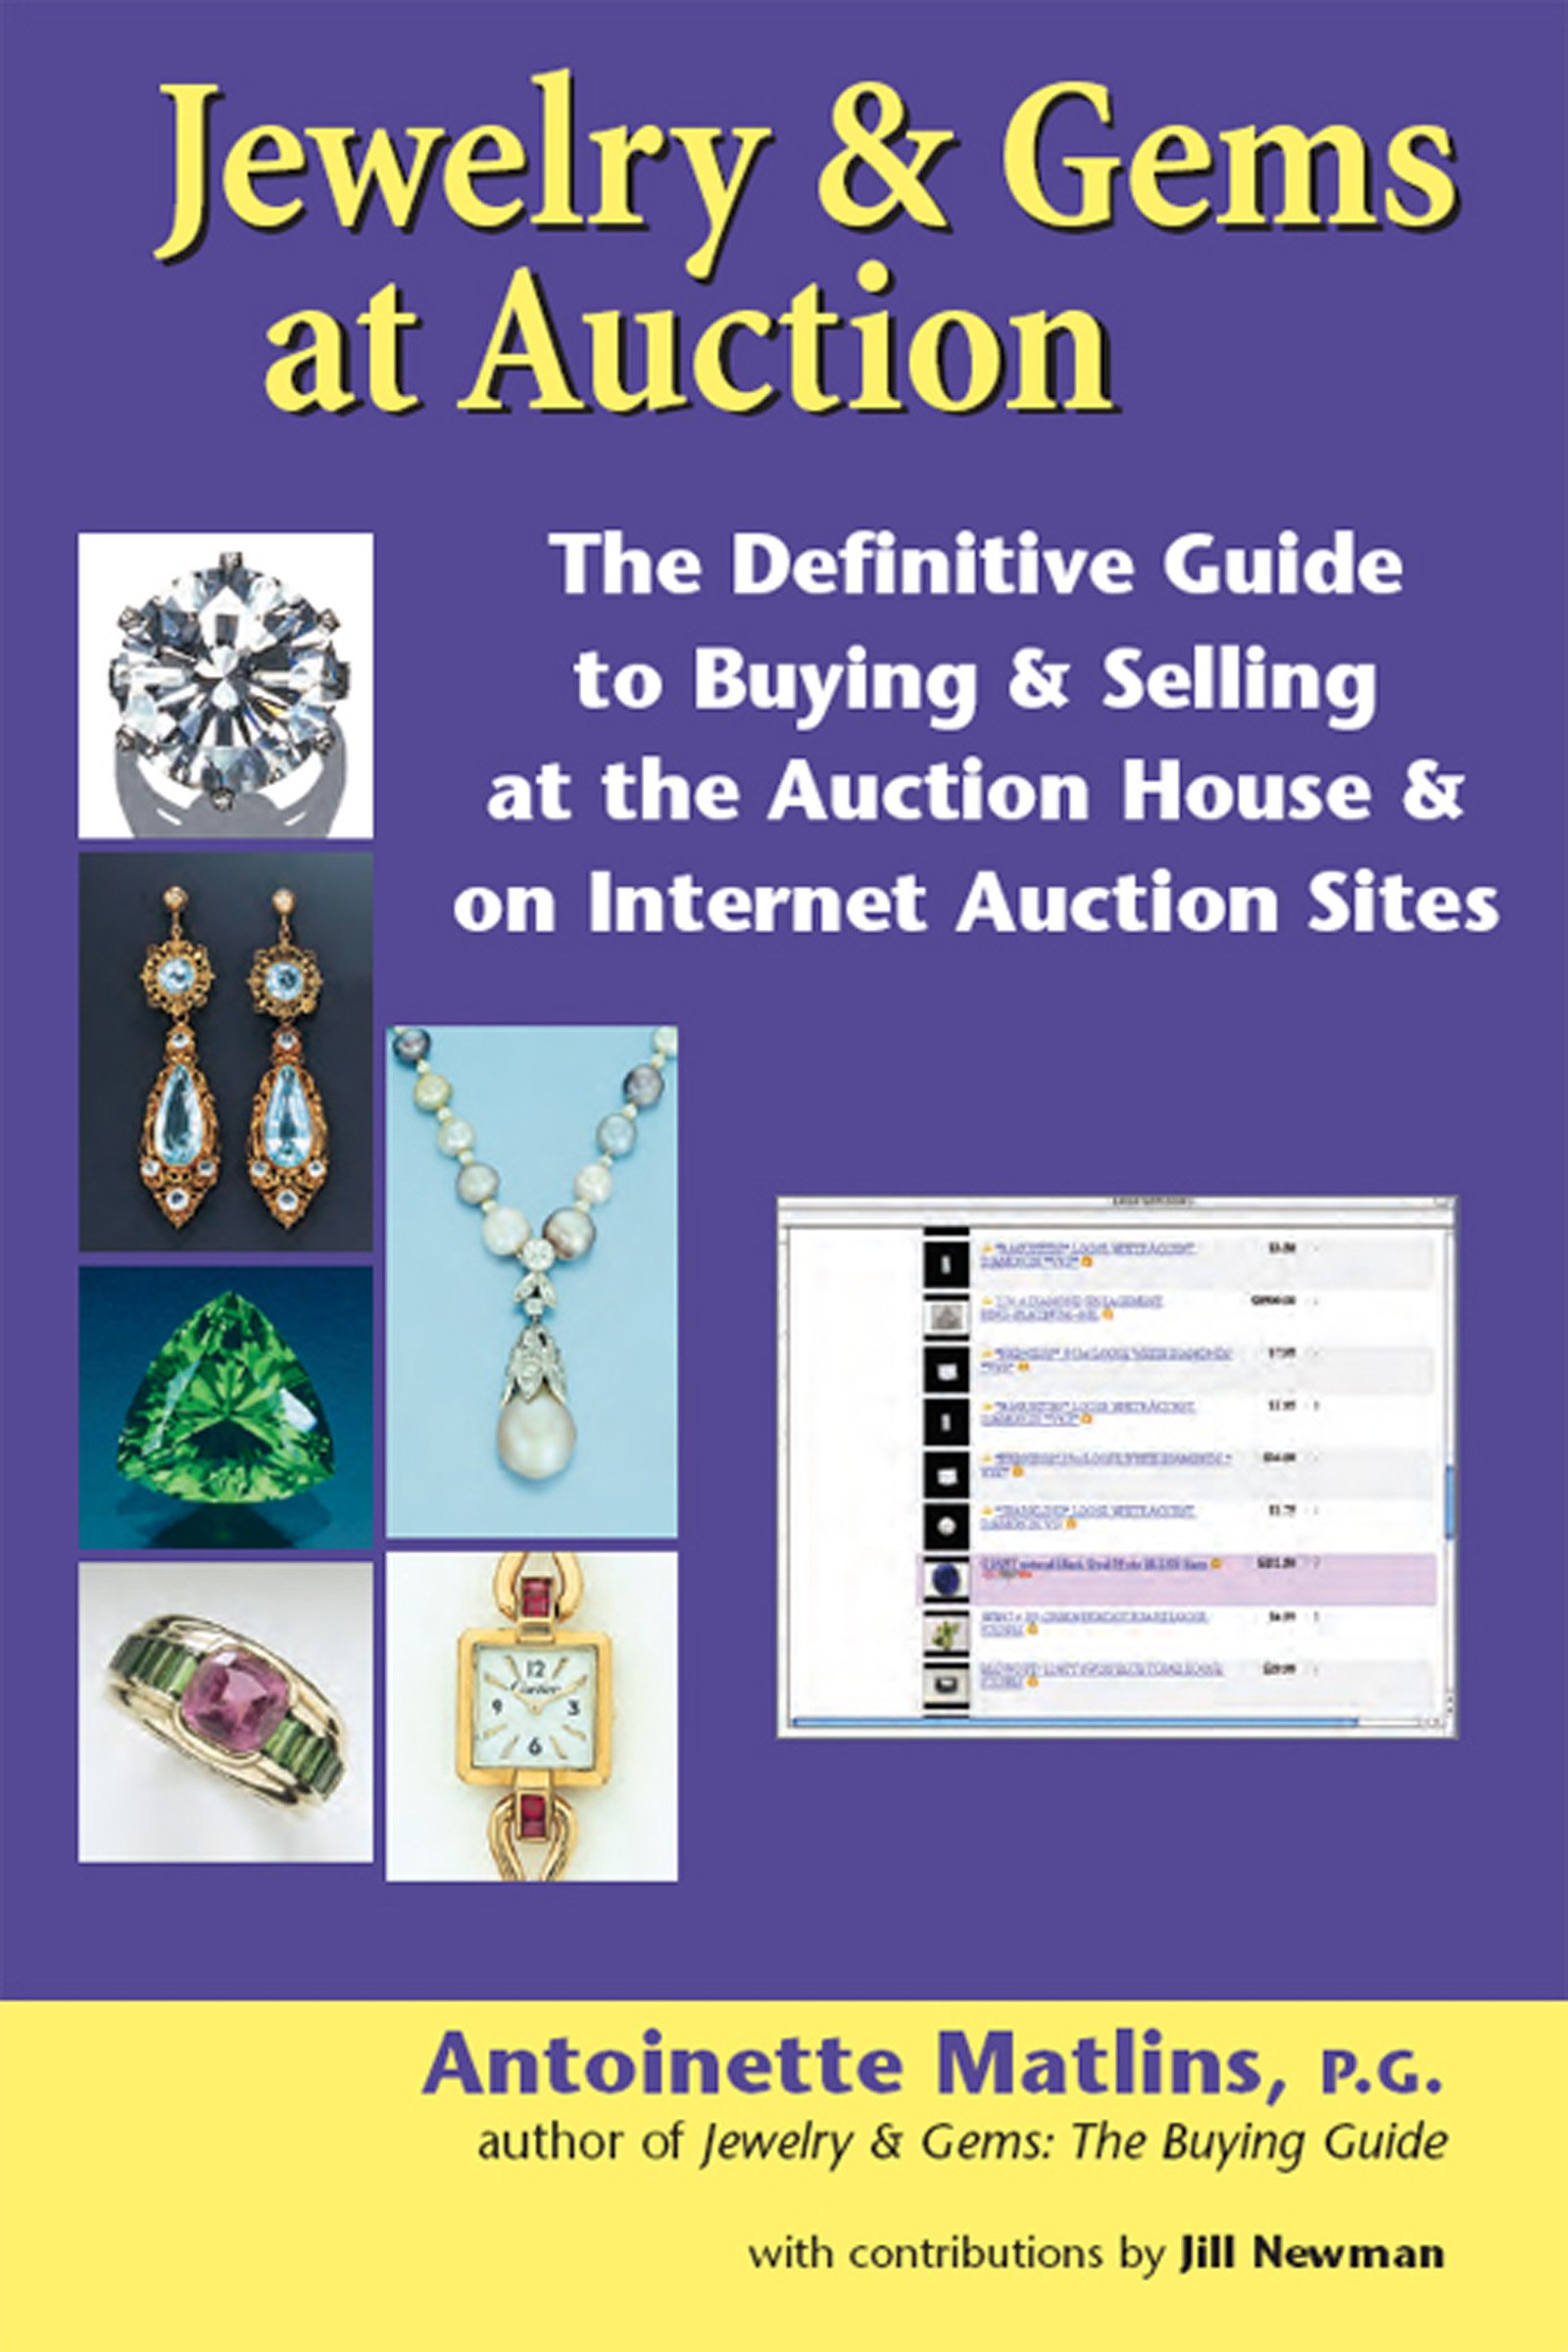 Jewelry U0026 Gems At Auction: The Definitive Guide To Buying U0026 Selling At The Auction  House U0026 On Internet Auction Sites: Antoinette Matlins: 9781683361398: ... Part 11